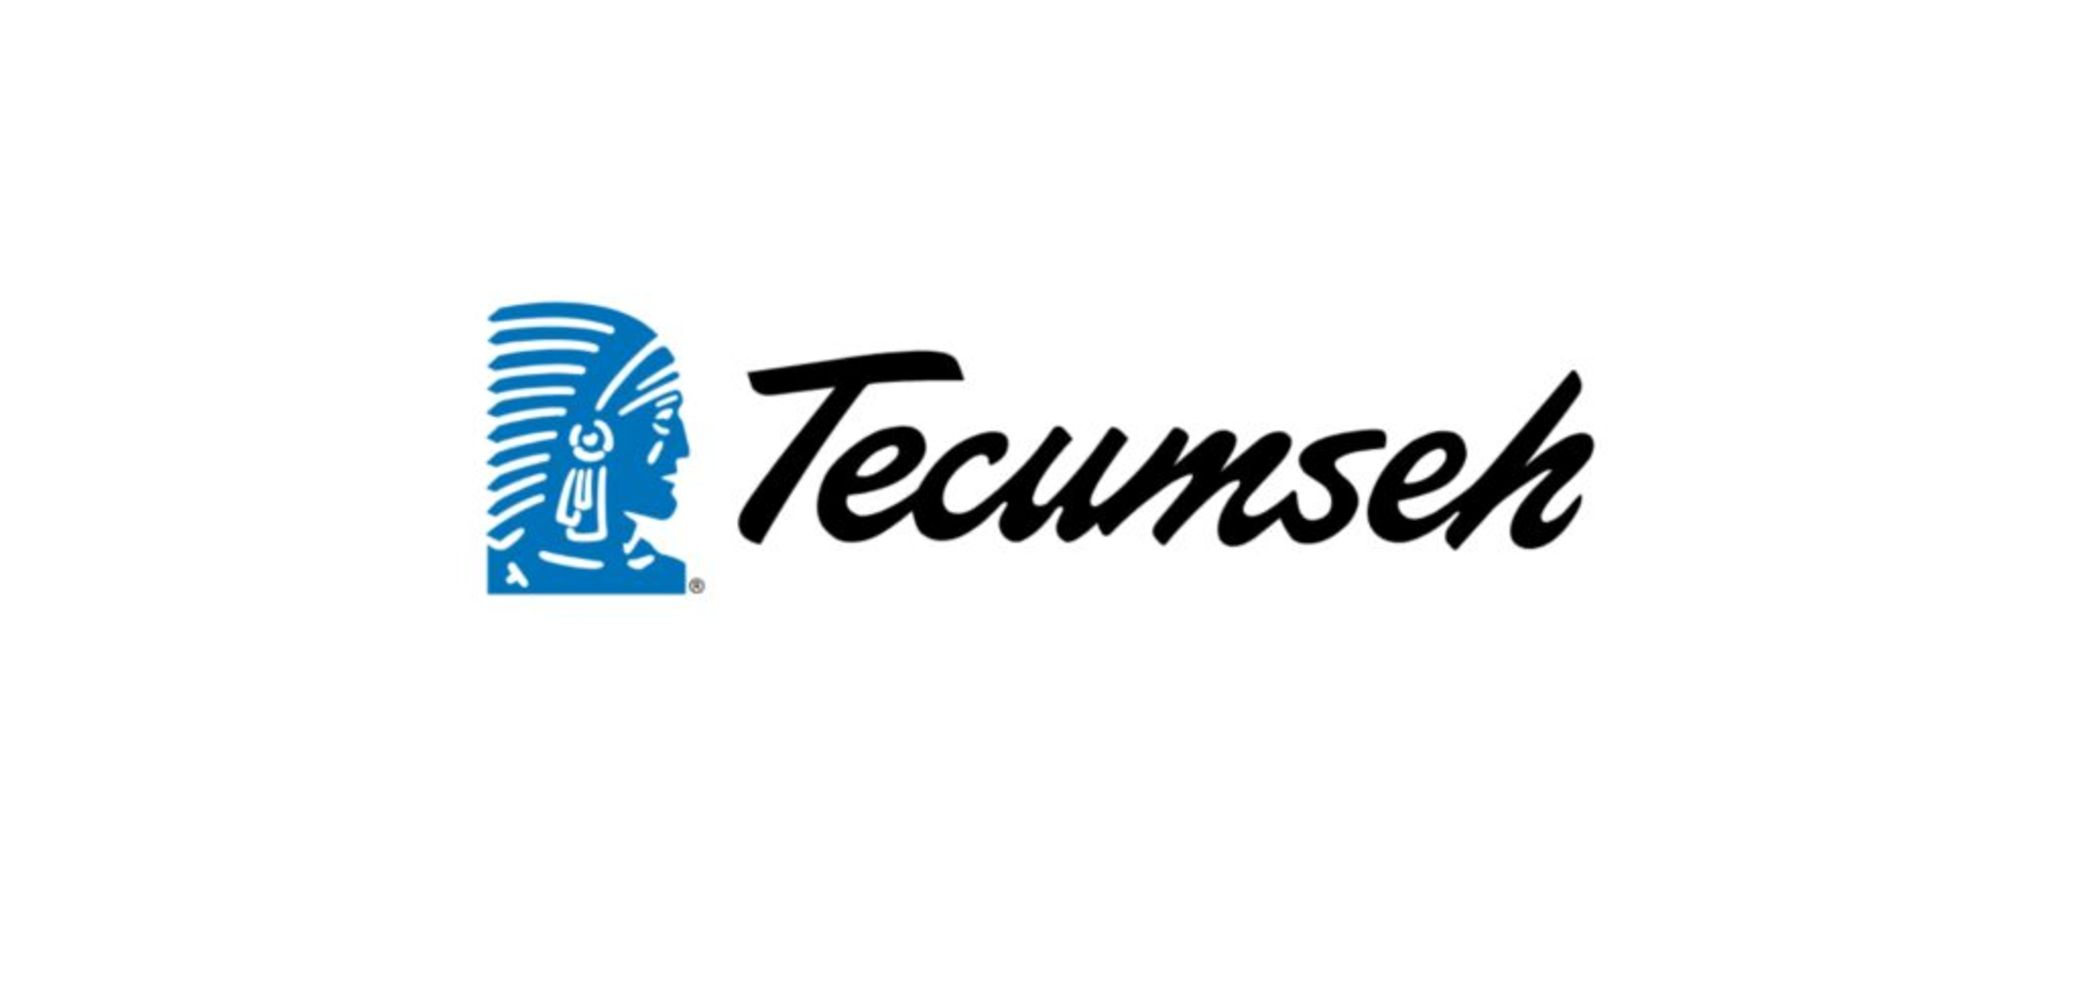 Refrigeration Compressor Manufacturer: Tecumseh Products Paris, TN Featuring Presses, Welding, Large Spare Parts Dept, Metalworking, Inspection